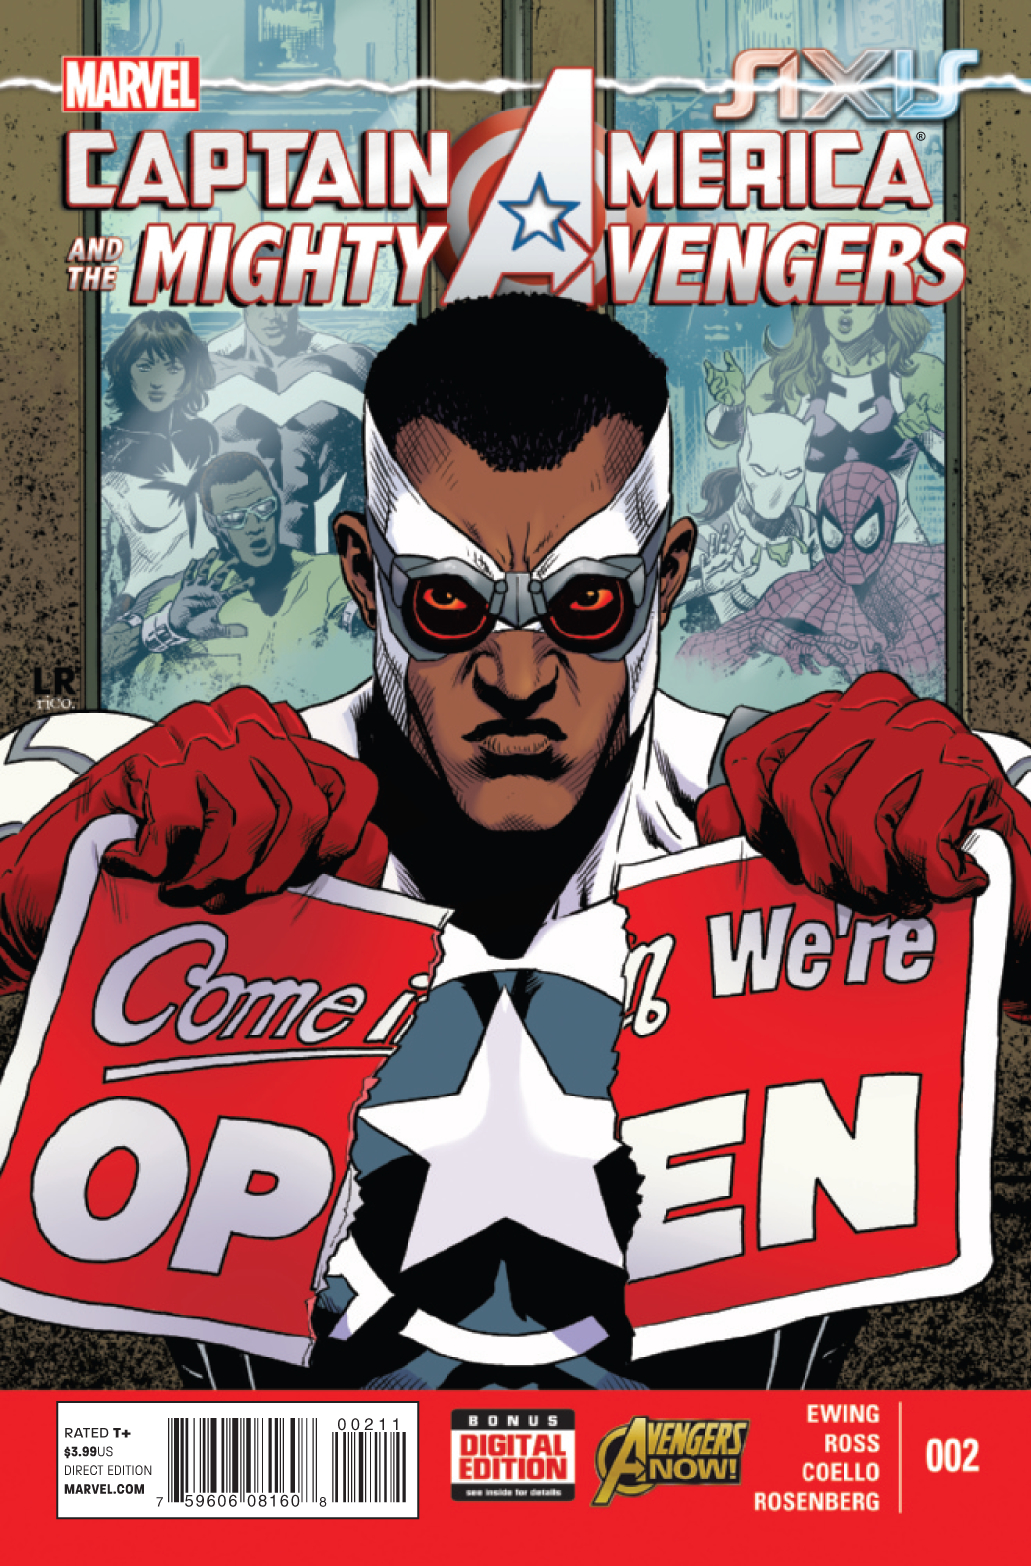 CAPTAIN AMERICA AND MIGHTY AVENGERS #2 AXIS